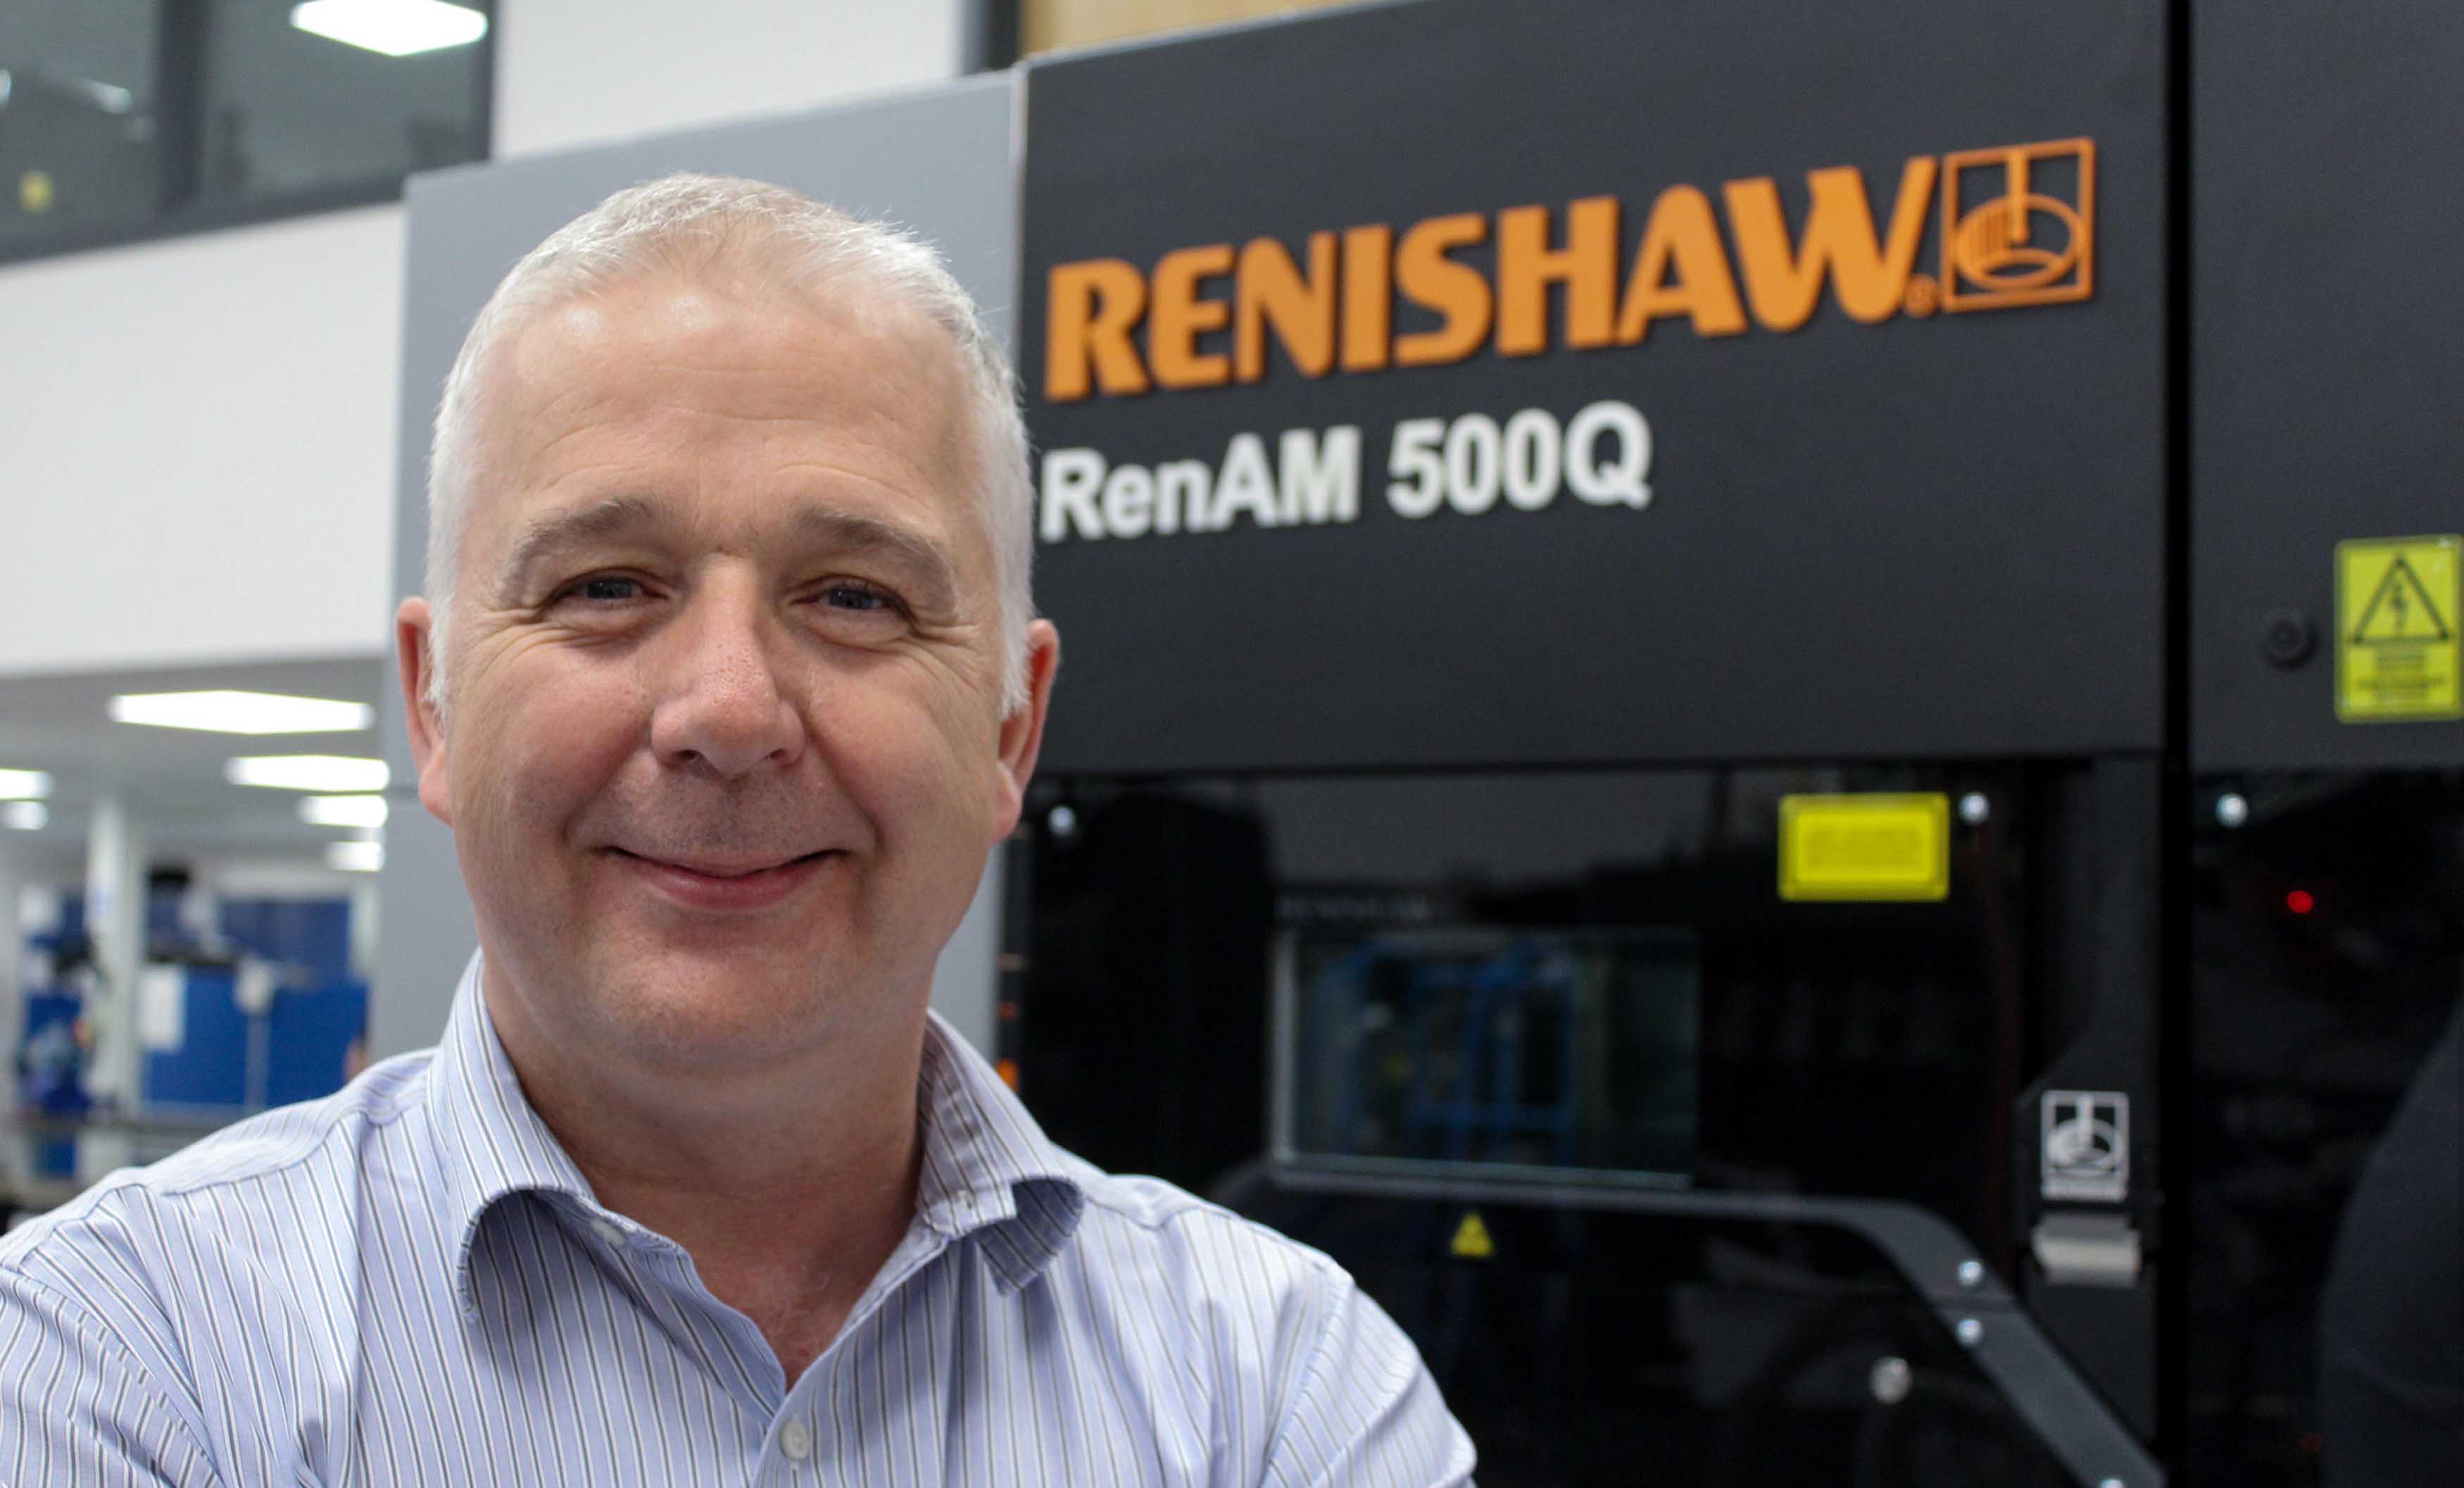 Renishaw_Chris_Sutcliffe.jpg